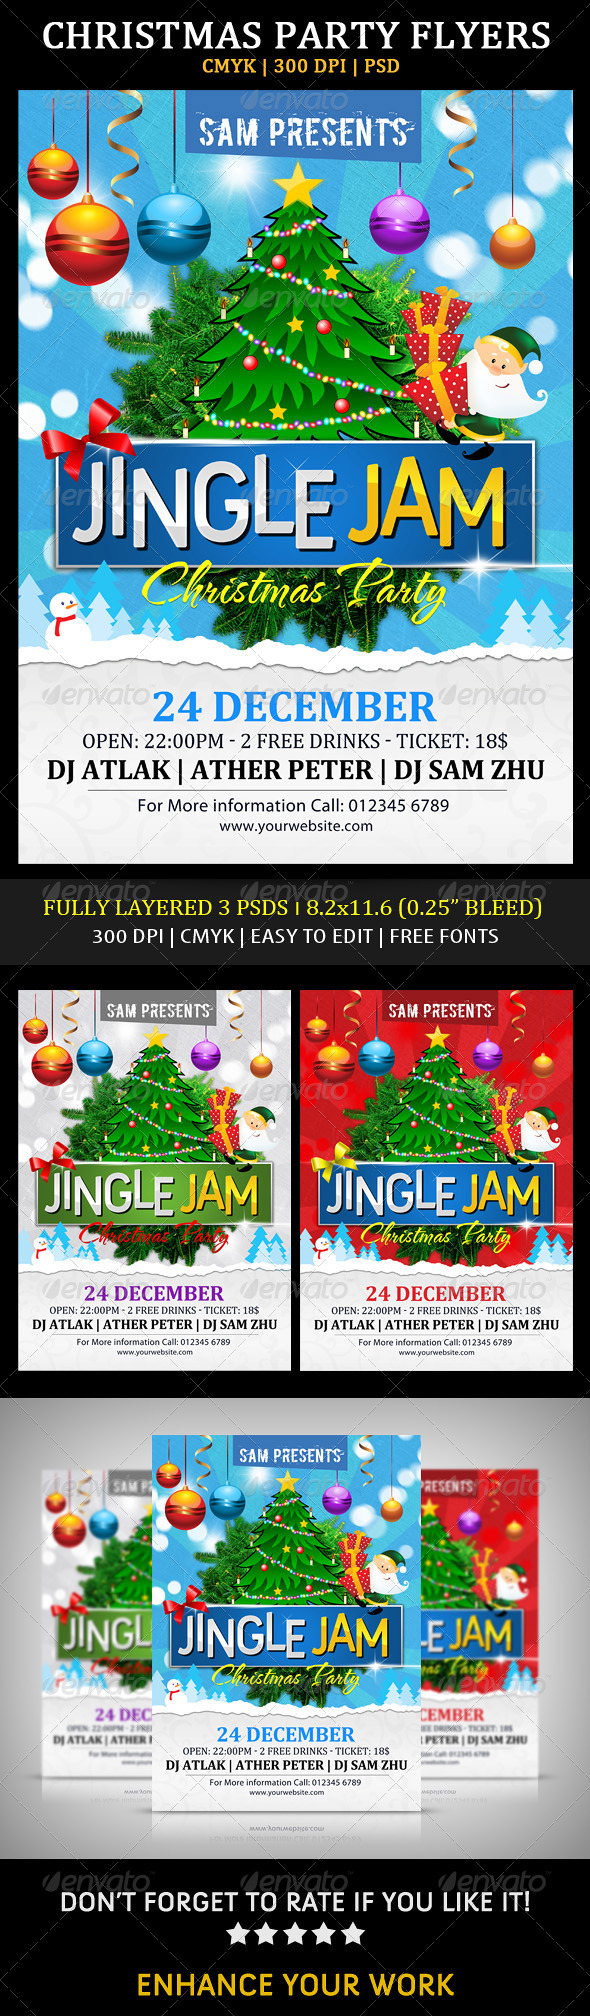 GraphicRiver Jingle Jam Christmas Party Flyers 6136651